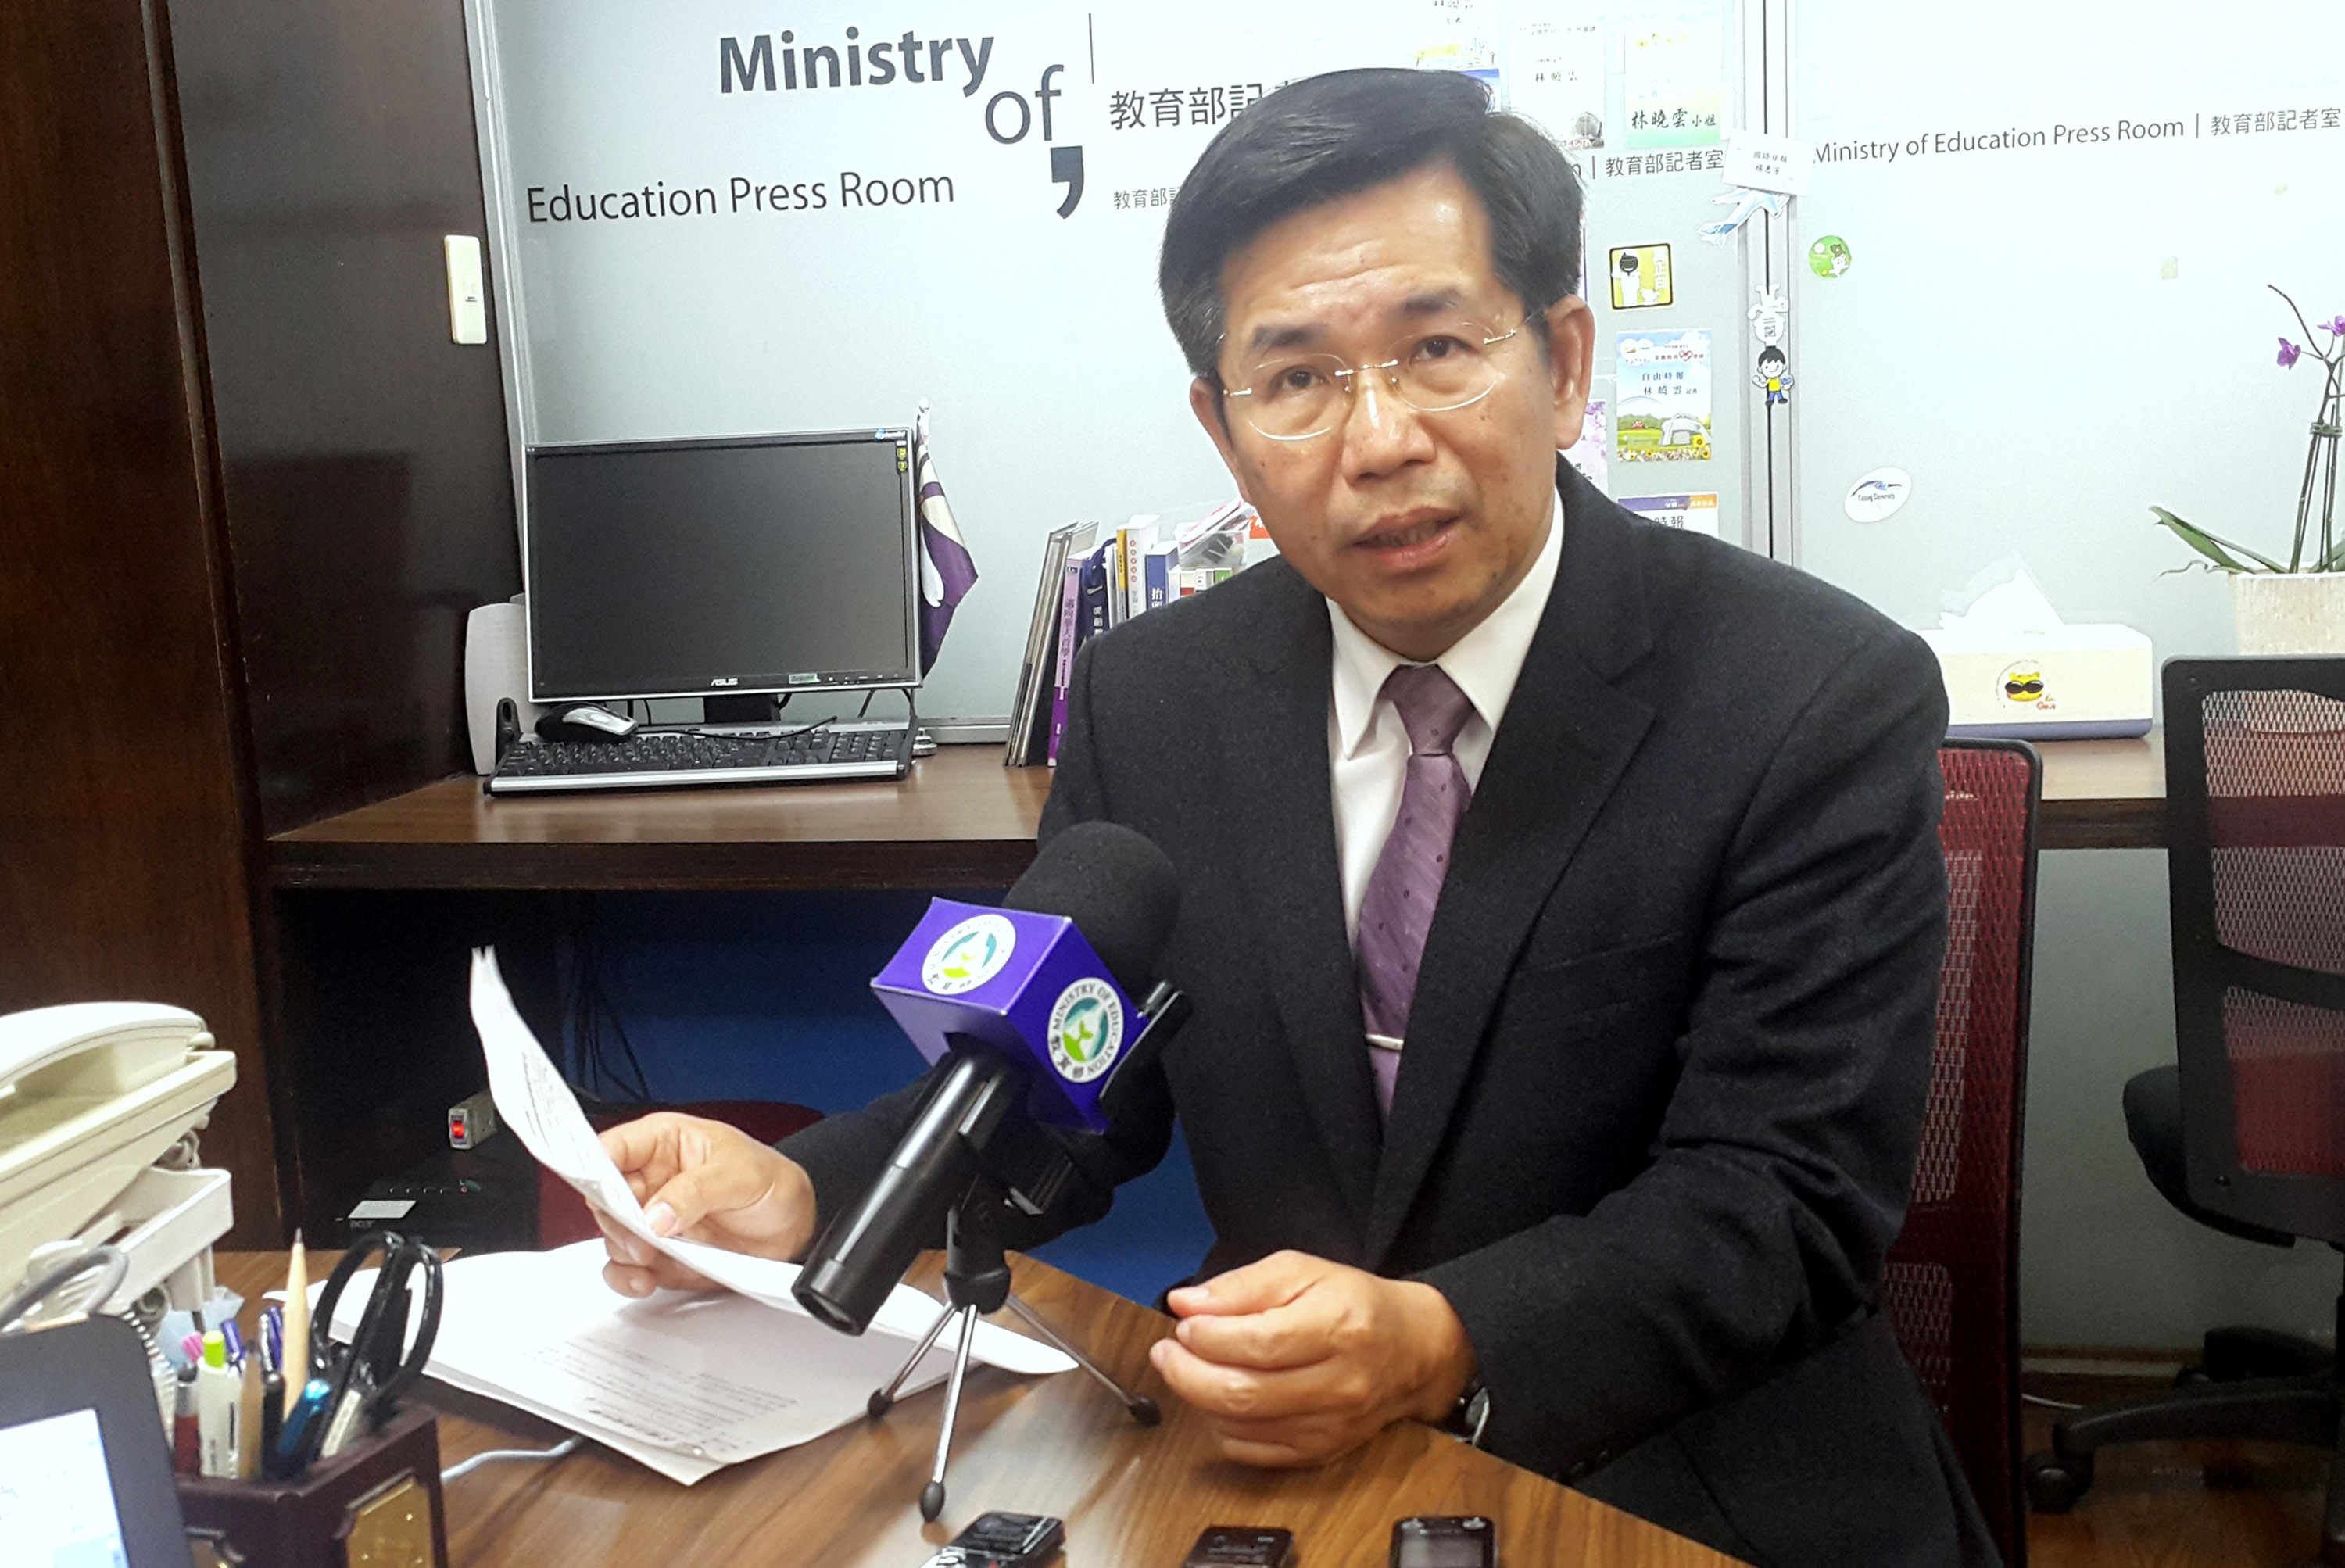 Taiwan's Education Minister Pan Wen-chung (潘文忠) briefed the media on the controversial deals signed between local universities and China.